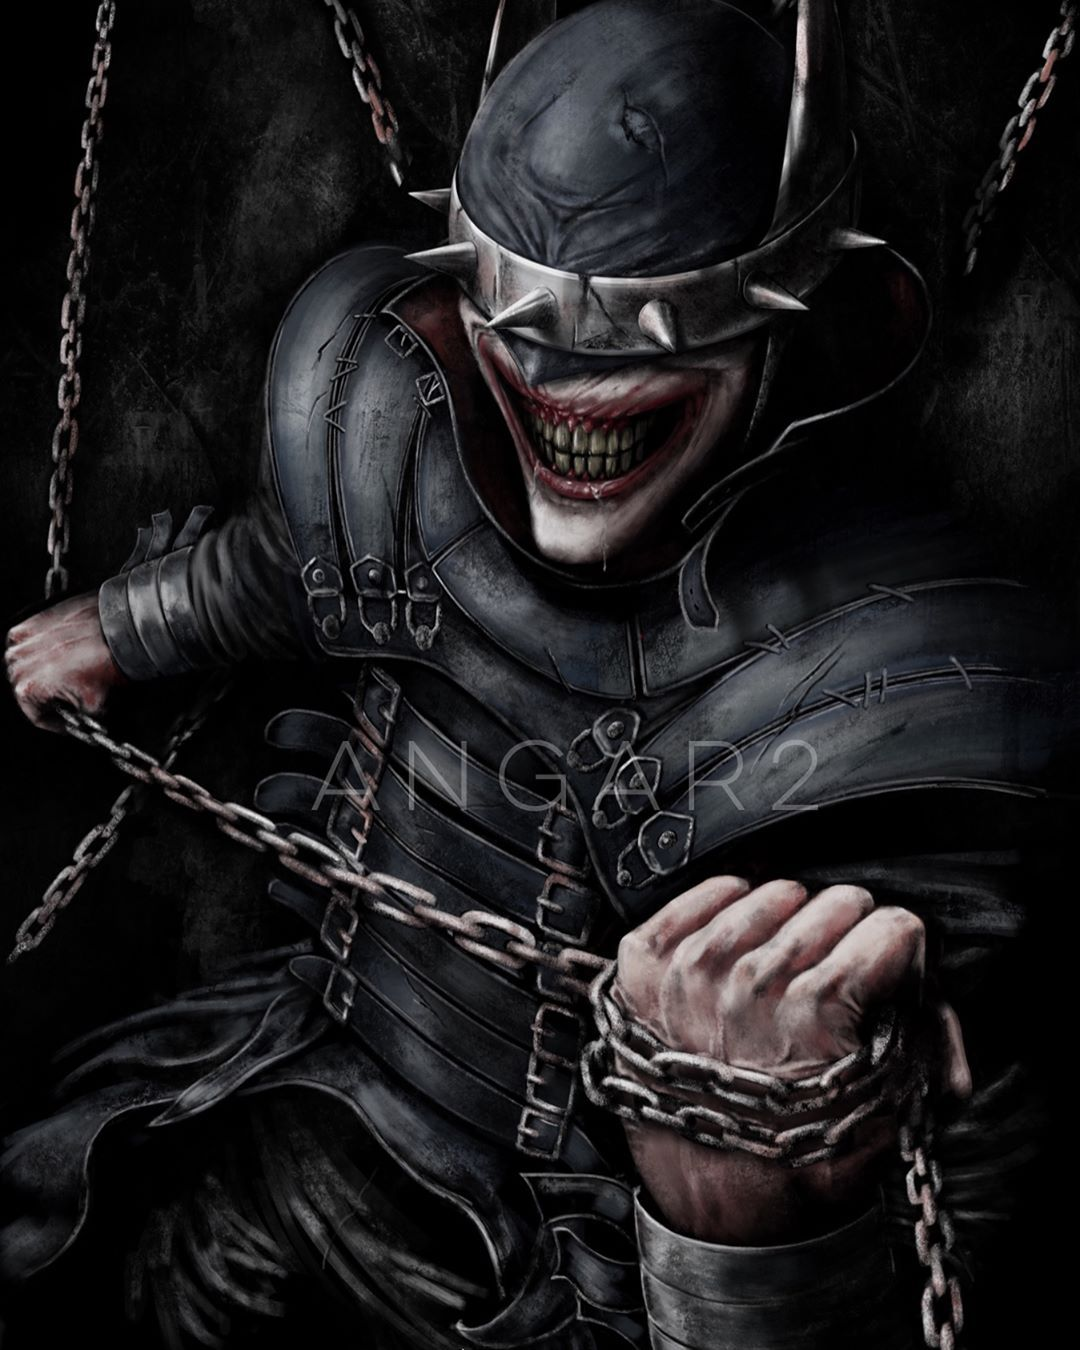 The Batman Who Laughs Fanart I Finally Had The Chance To Do